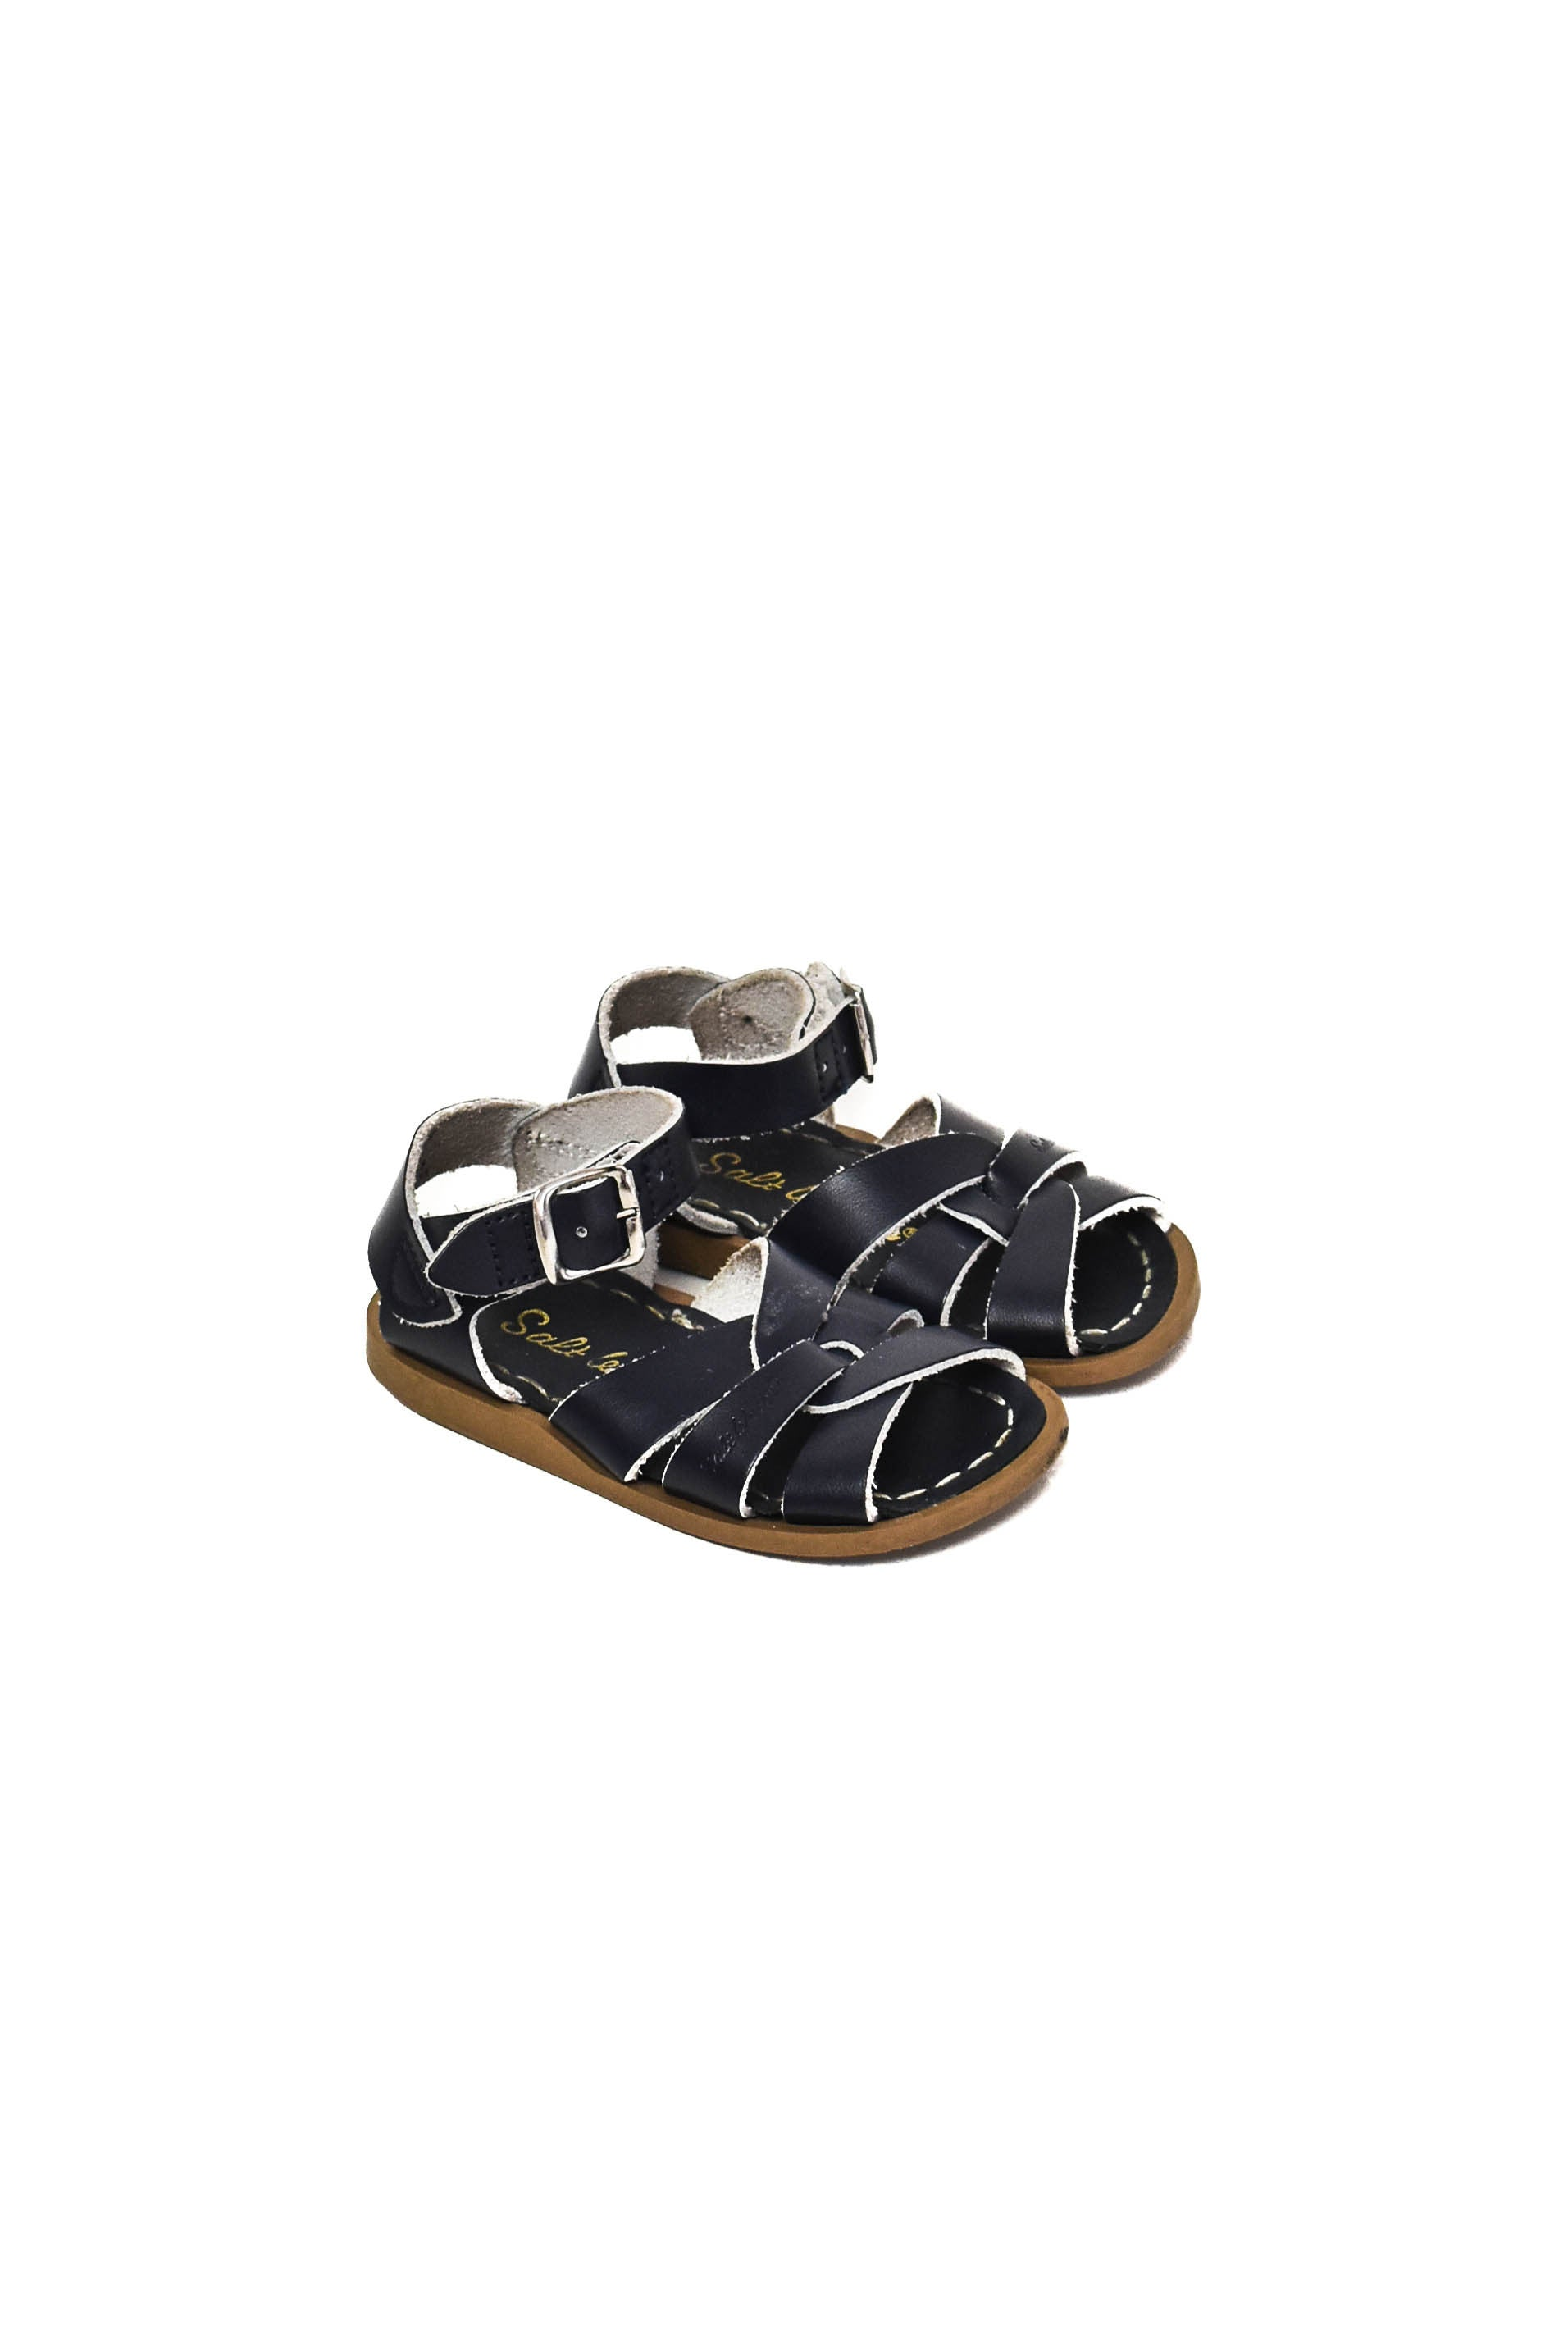 10003663 Salt-Water Baby~Sandals 12-18M (US 5) at Retykle